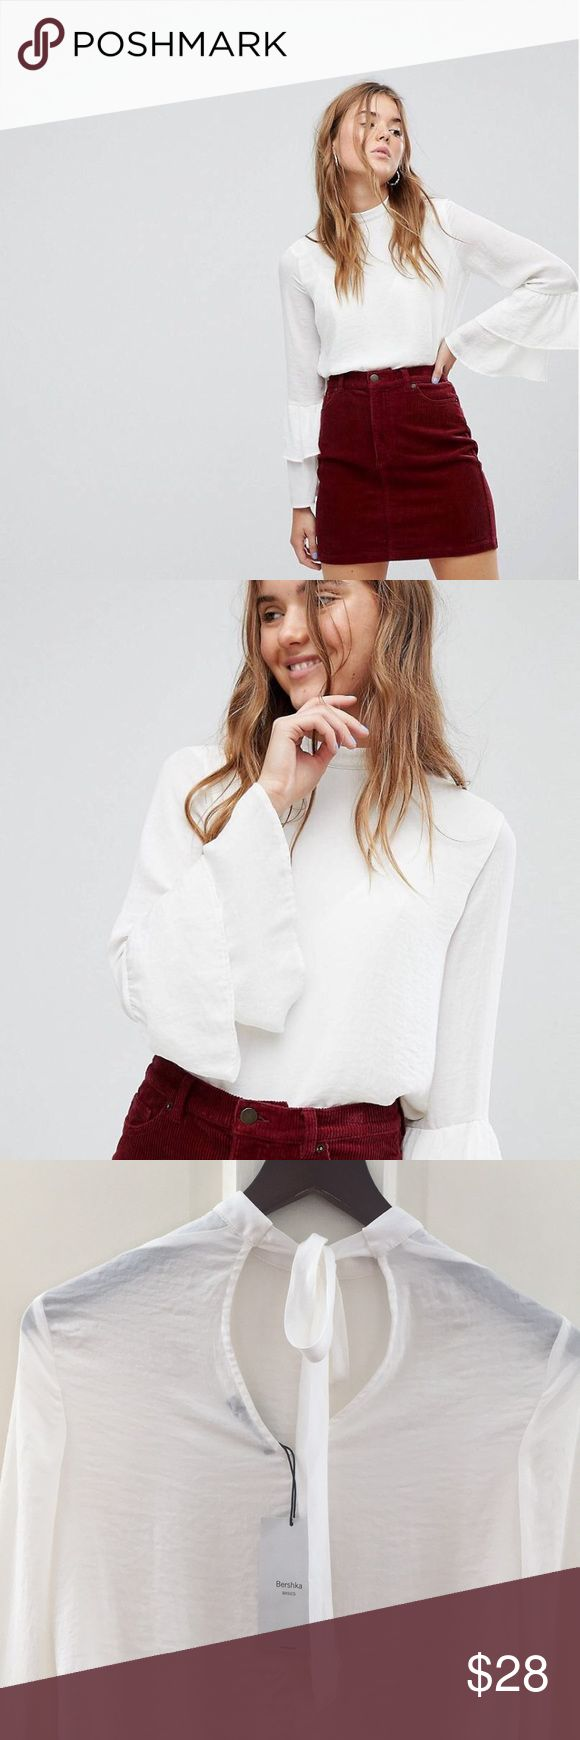 NWT! Blouse - Double Ruffle Sleeve NWT! Double Ruffle Sleeve Top with back neck tie.  100% POLYESTER Bershka Tops Blouses